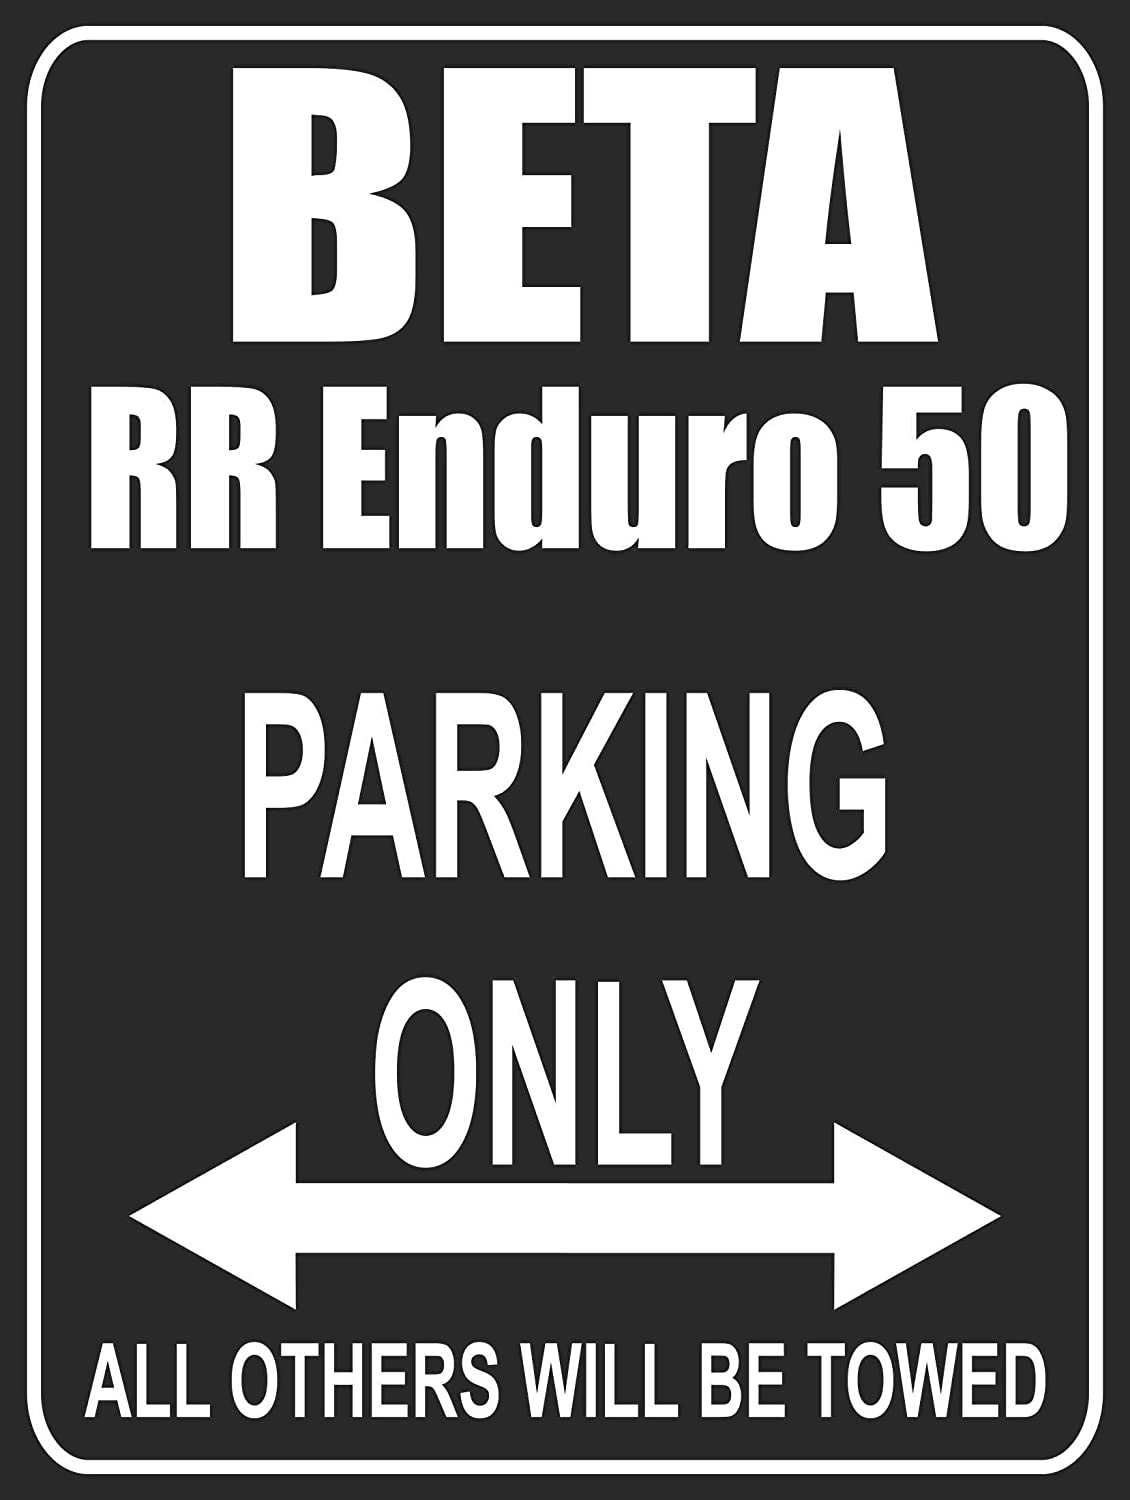 Parking Only BETA RR Enduro 50 INDIGOS UG Parkplatz Parkplatzschild